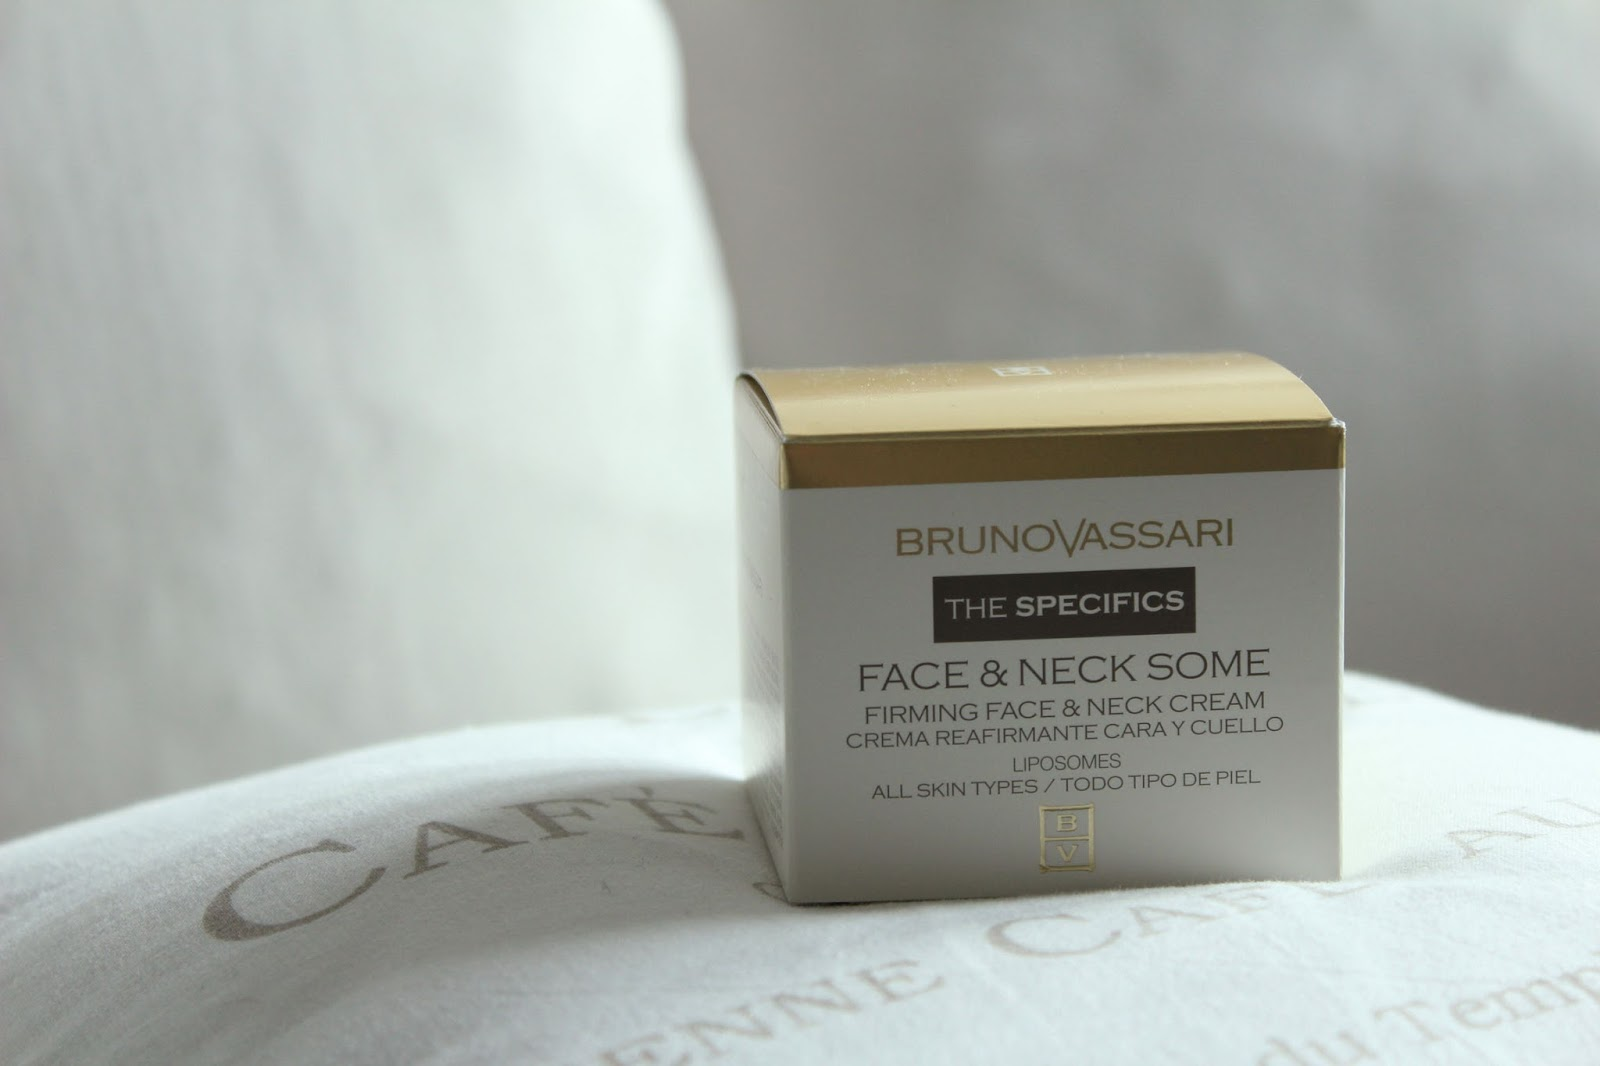 Eniwhere Fashion - Bruno Vassari - Face & Neck Some